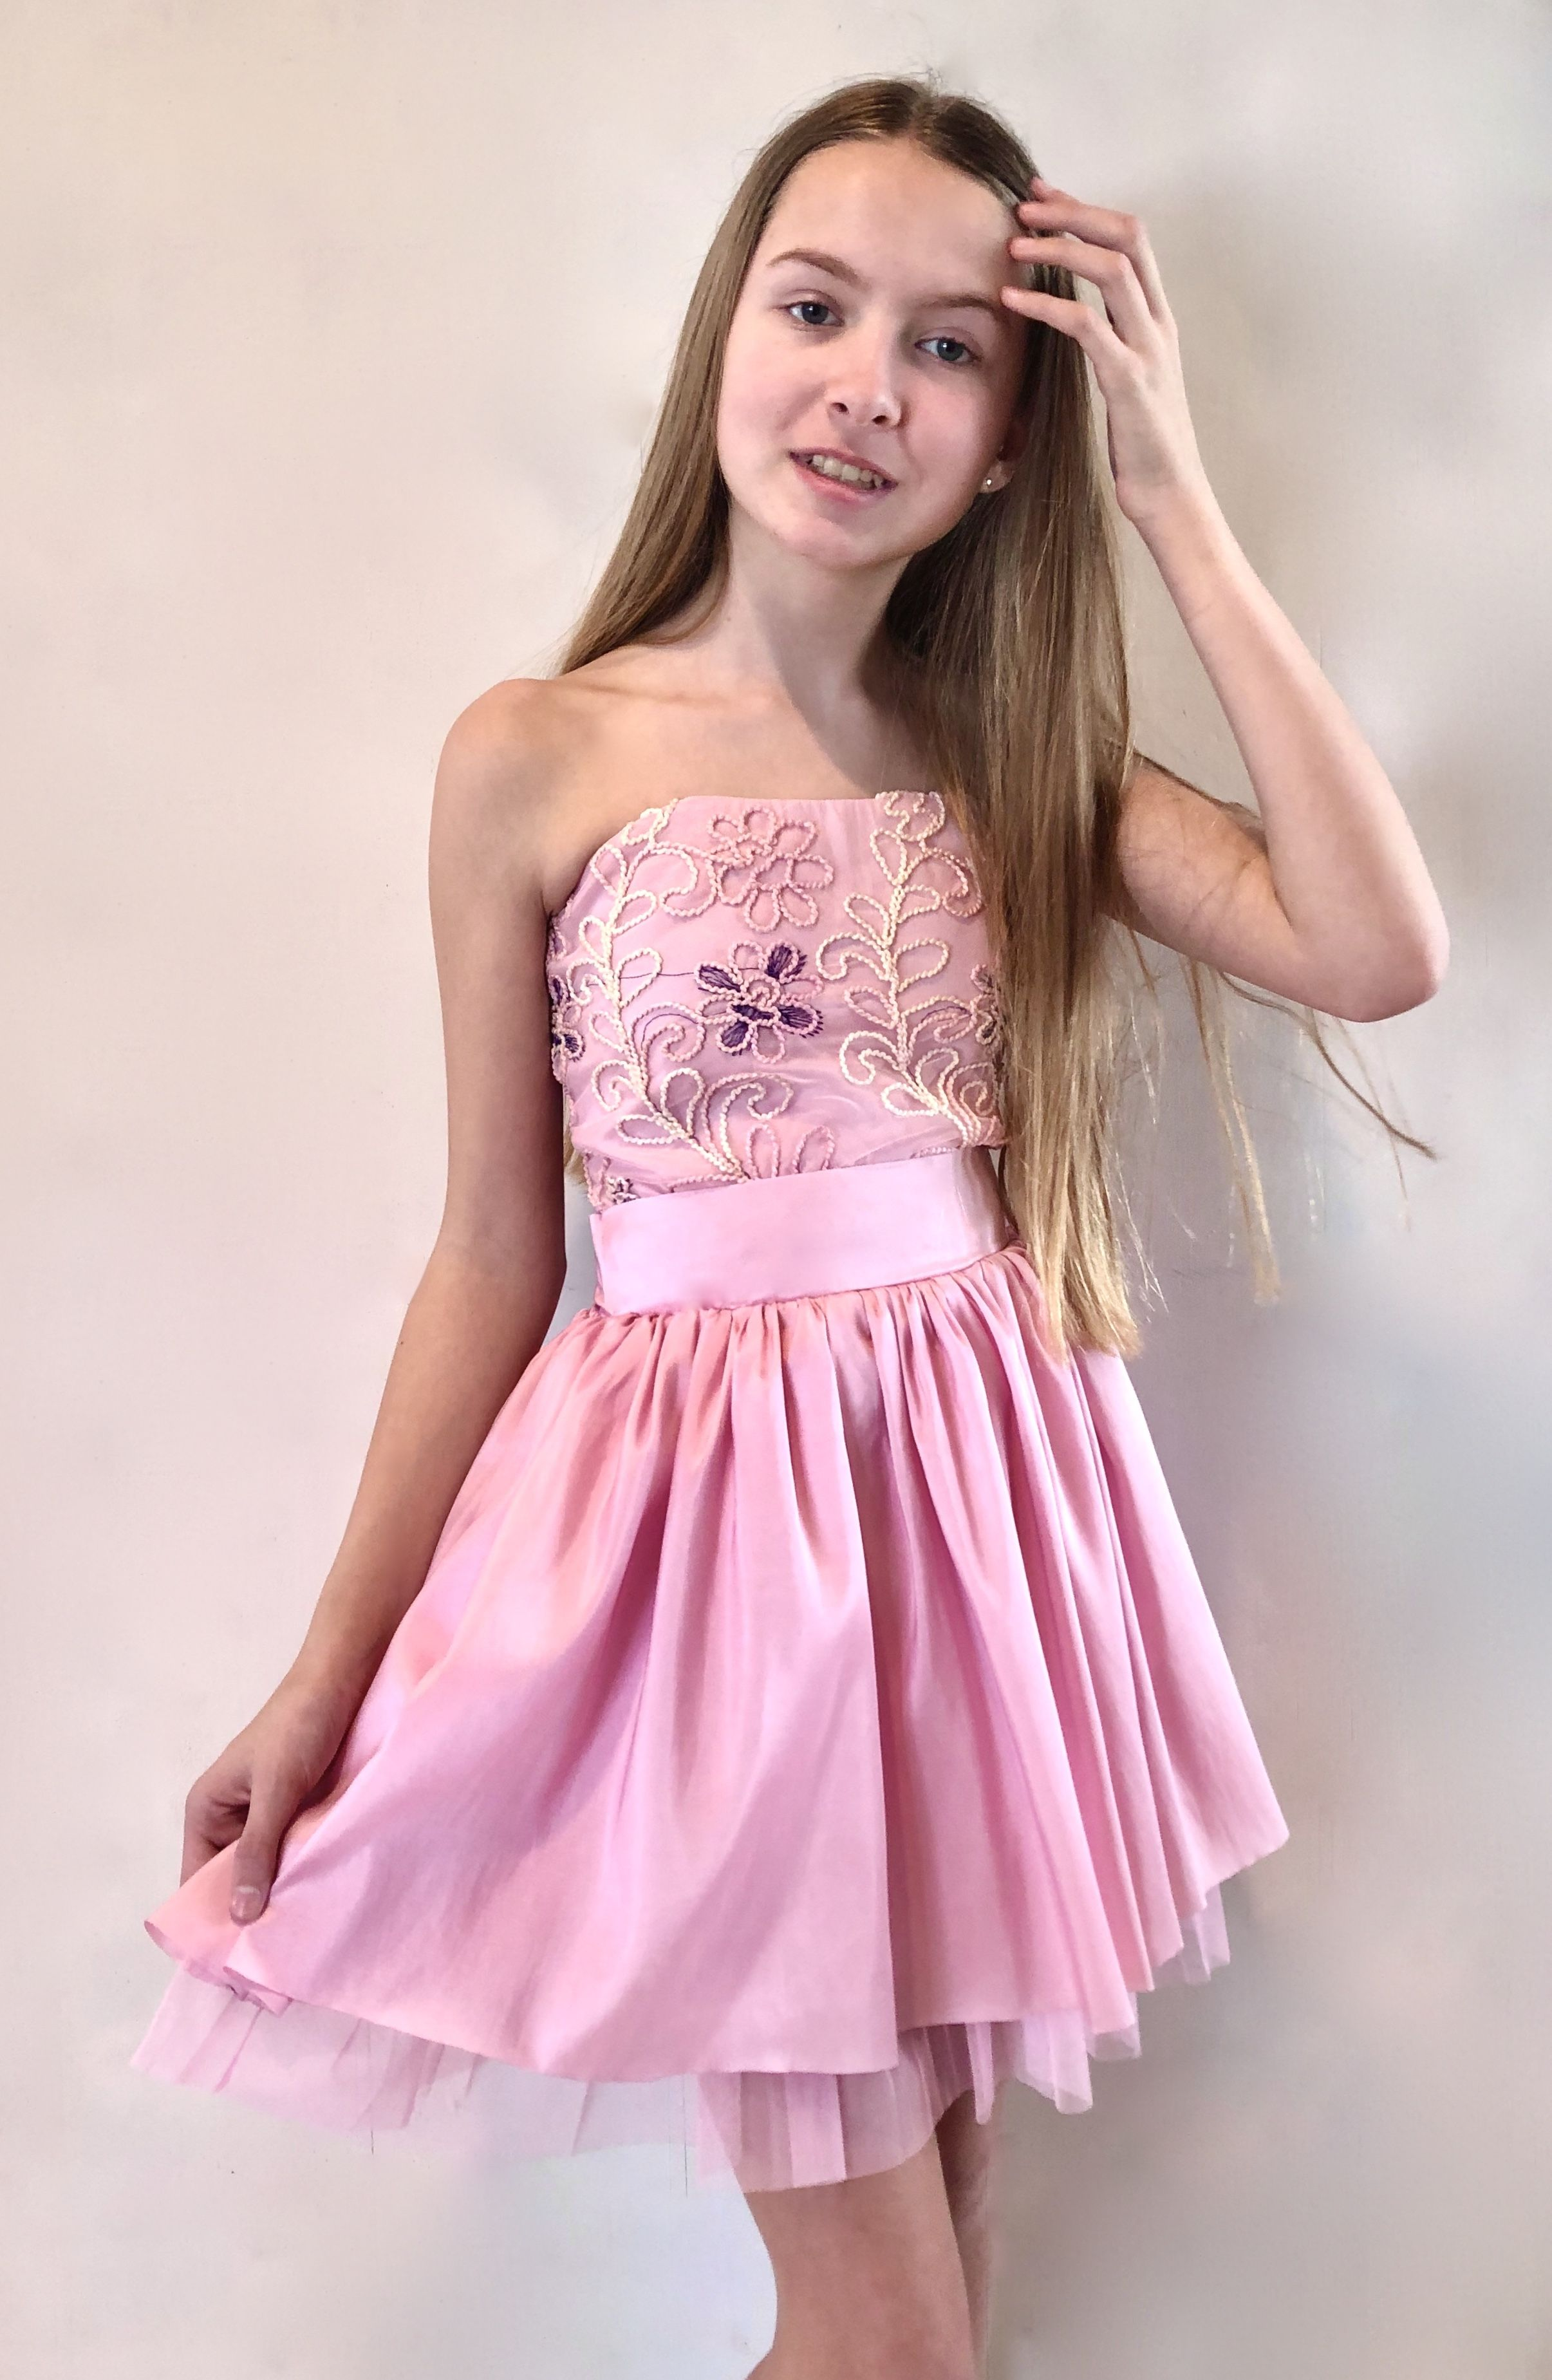 Party Dresses For Tweens And Teens 8 16 Years Old Stella M Lia Cute Dress Outfits Dresses For Tweens Flower Girl Dresses Tulle [ 3697 x 2411 Pixel ]